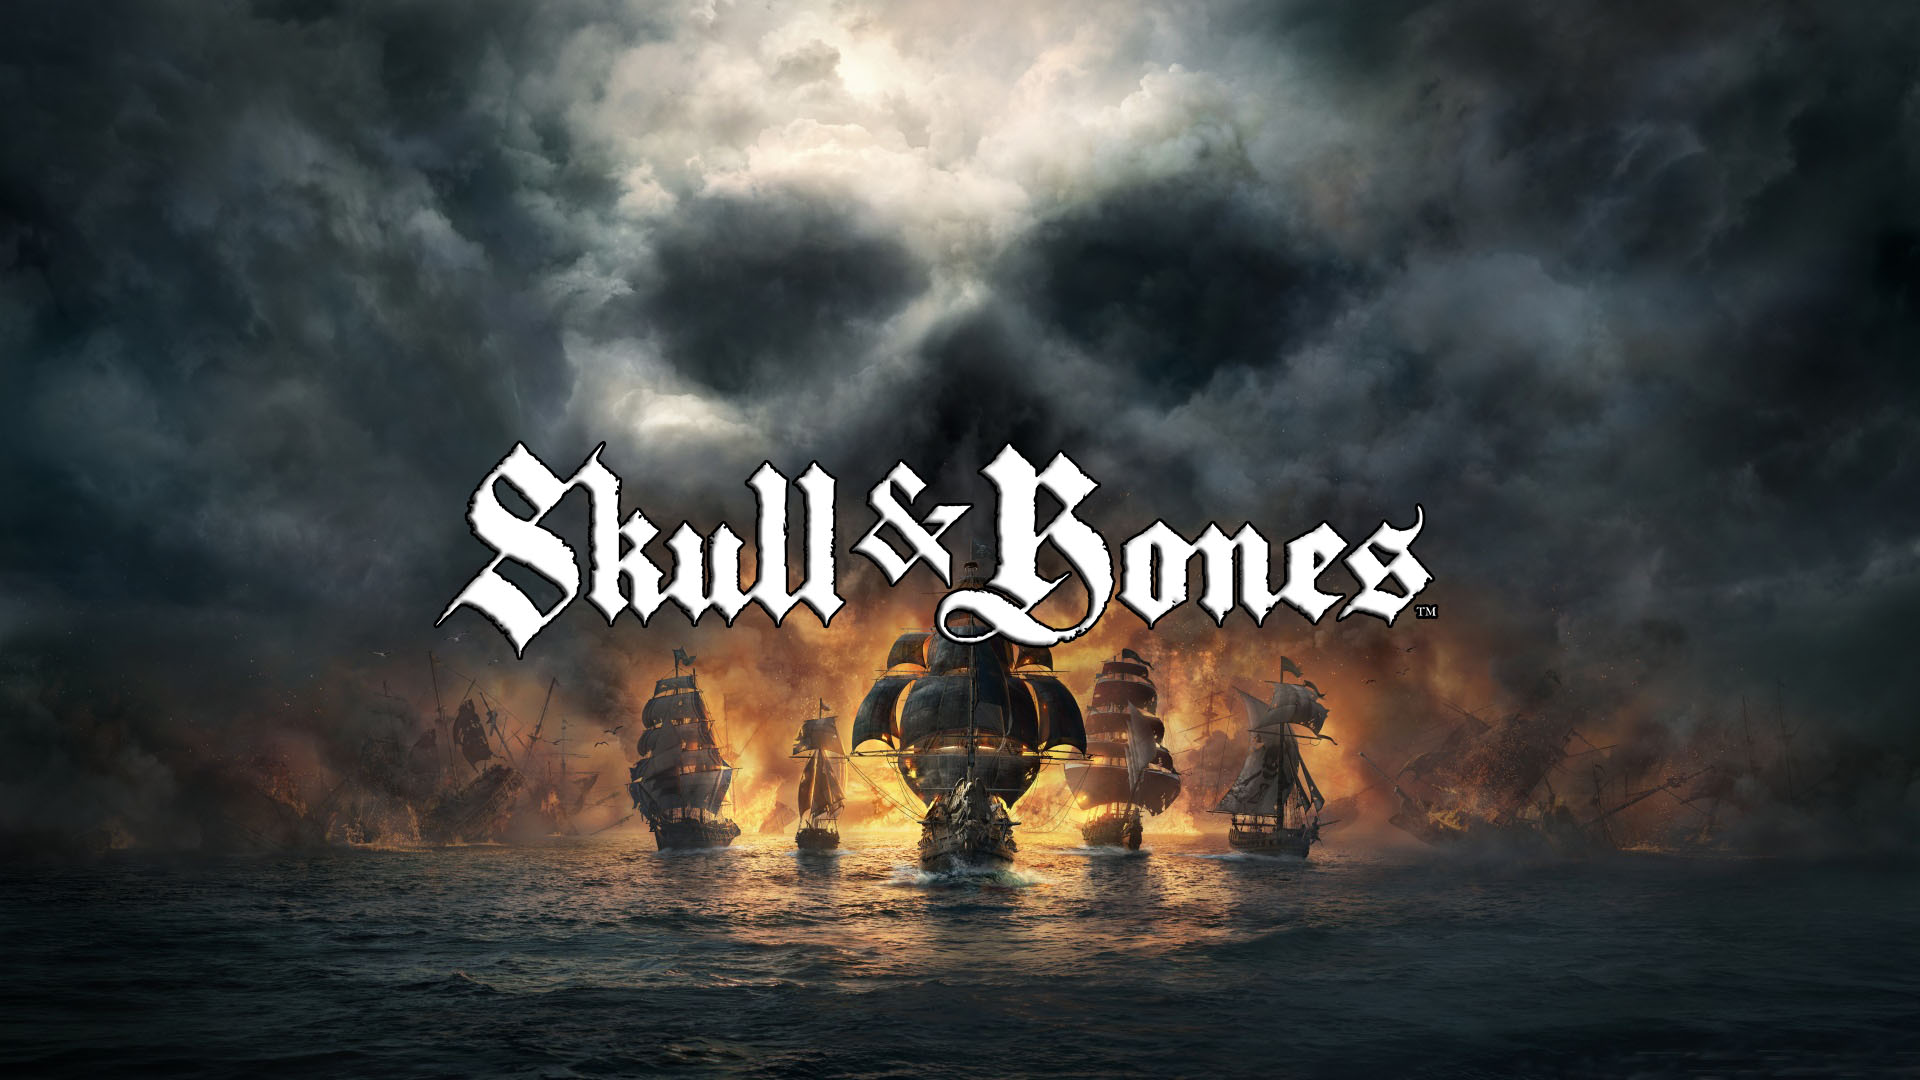 skull & bones Crack download pc